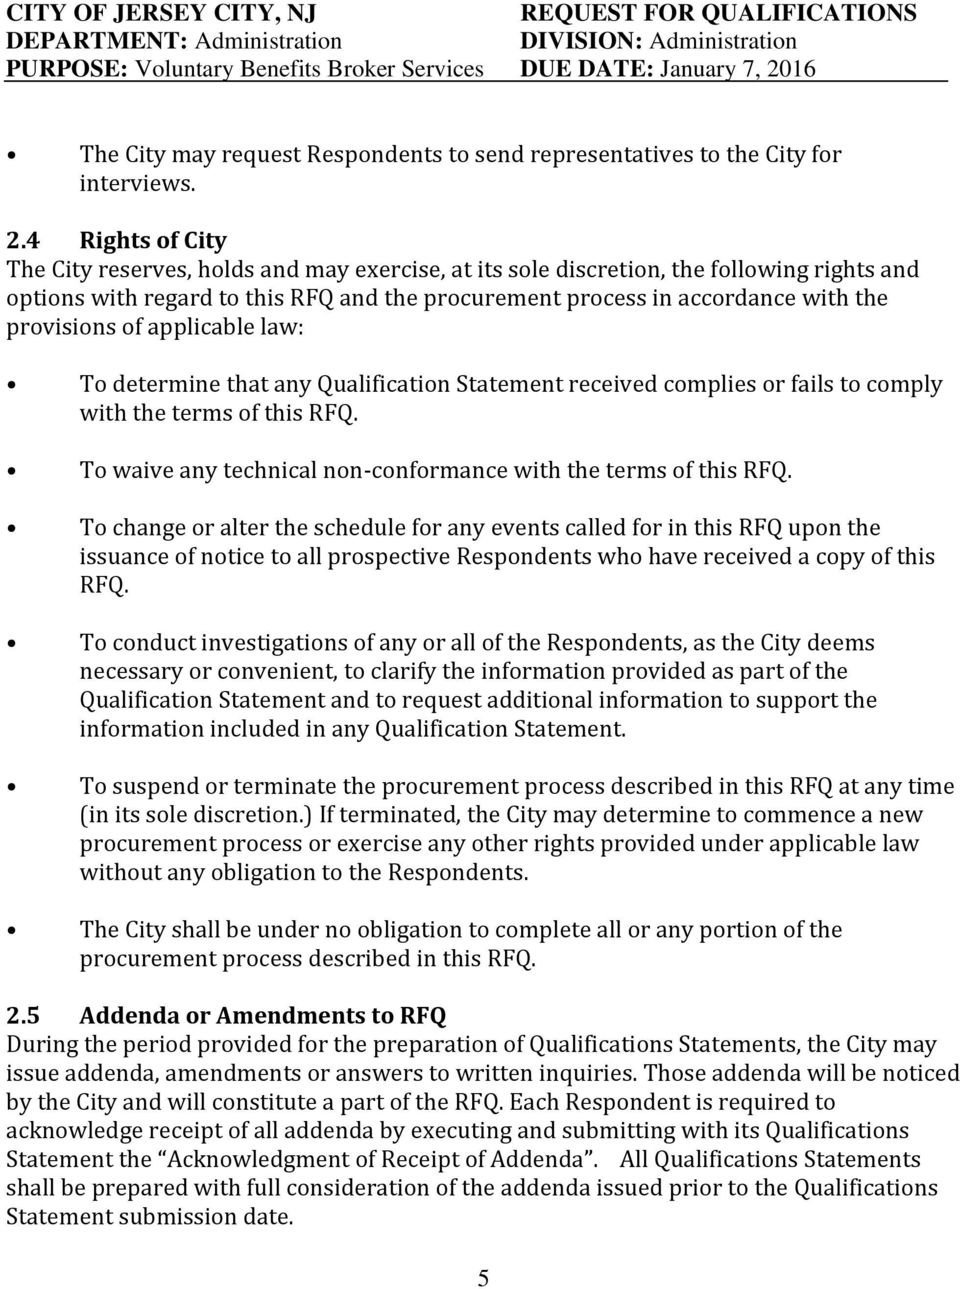 4 Rights of City The City reserves, holds and may exercise, at its sole discretion, the following rights and options with regard to this RFQ and the procurement process in accordance with the